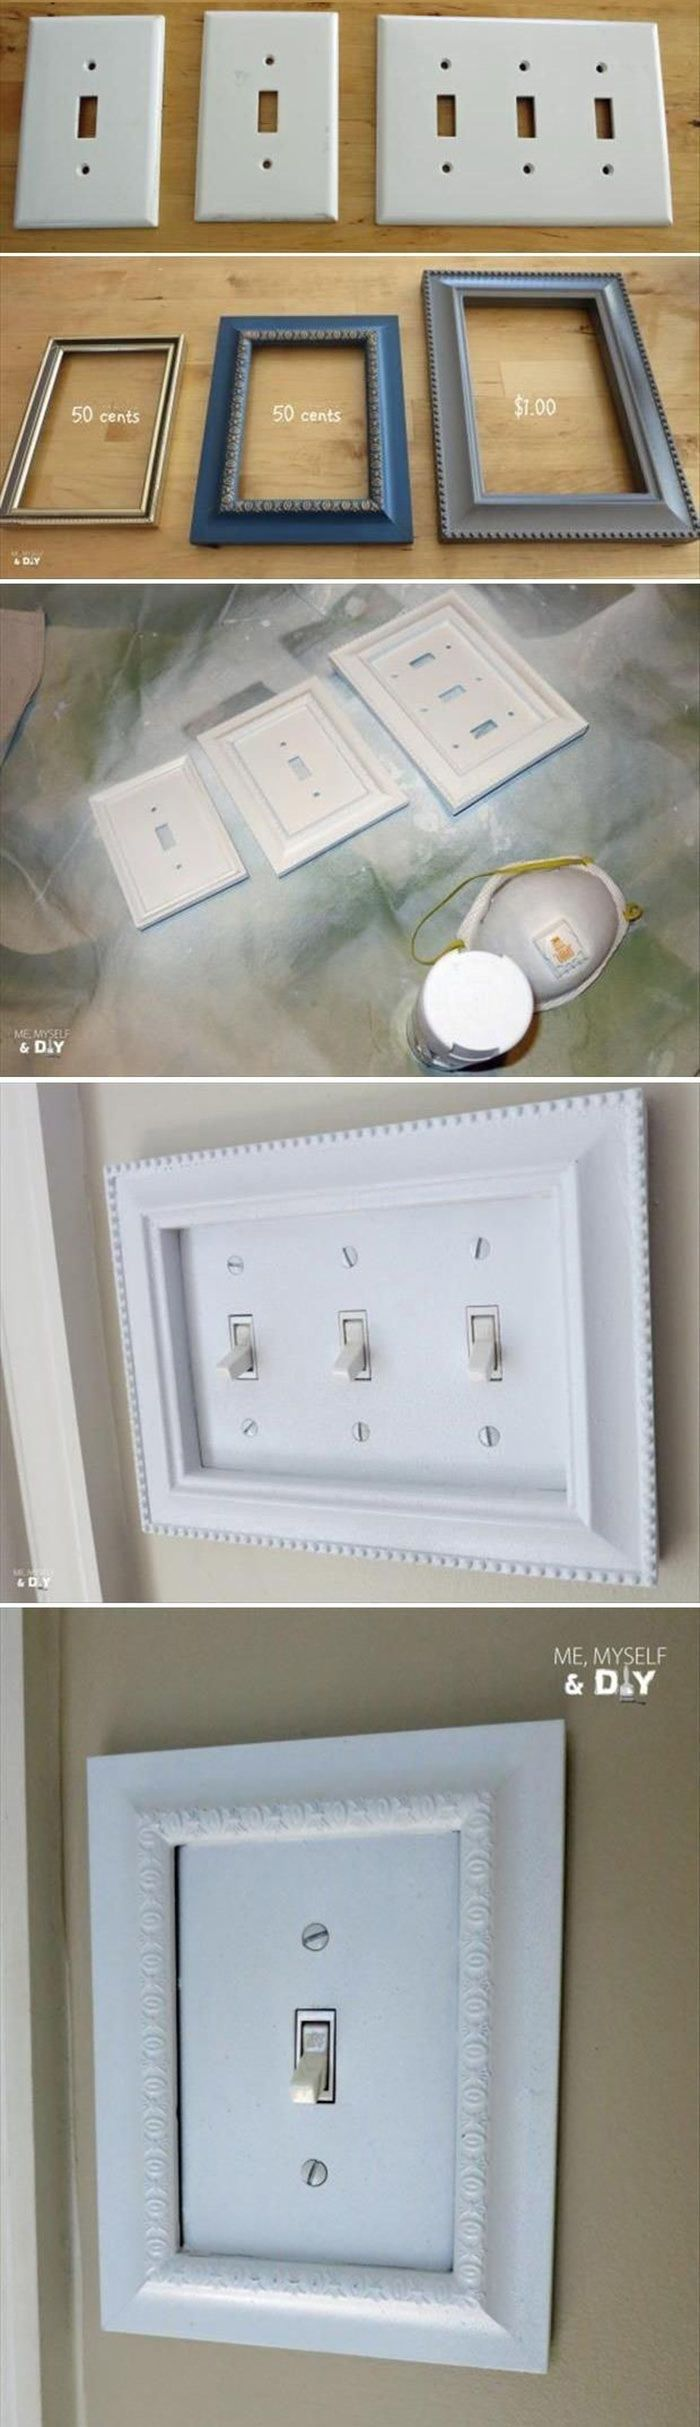 Cool 26 Inexpensive Diy Upgrades That Will Add A Touch Of